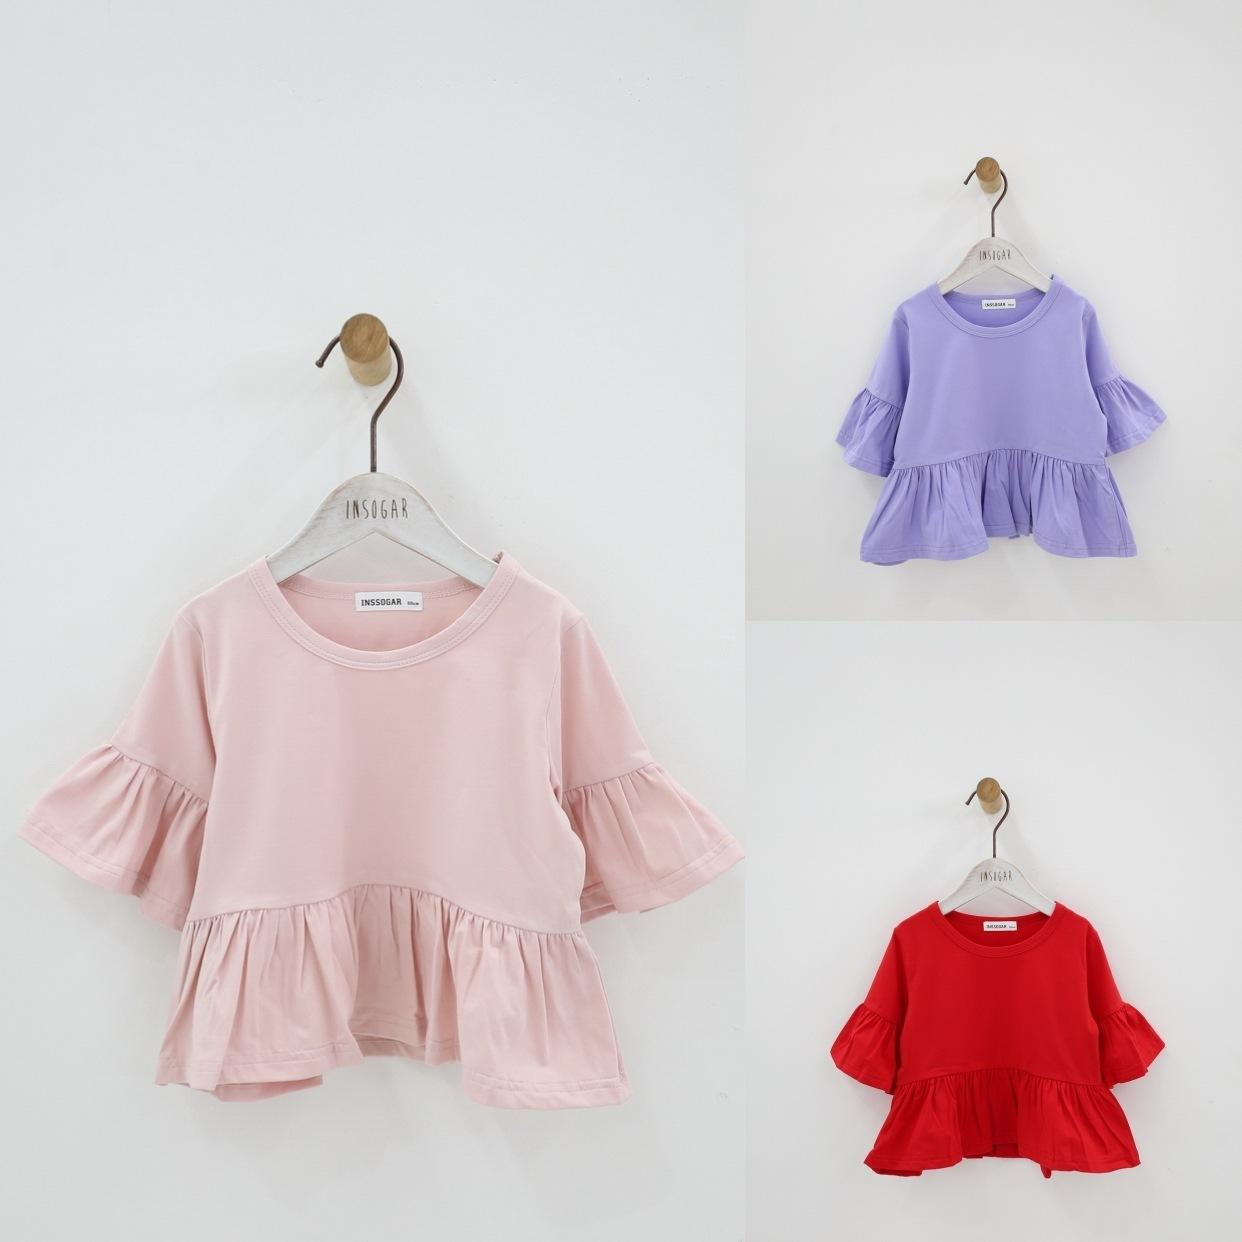 Ruffle Flare Sleeve Summer Girls Blouses Tops Pure Cotton Princess Casual Baby Girl Shirts for Children Kids Clothing Shirts